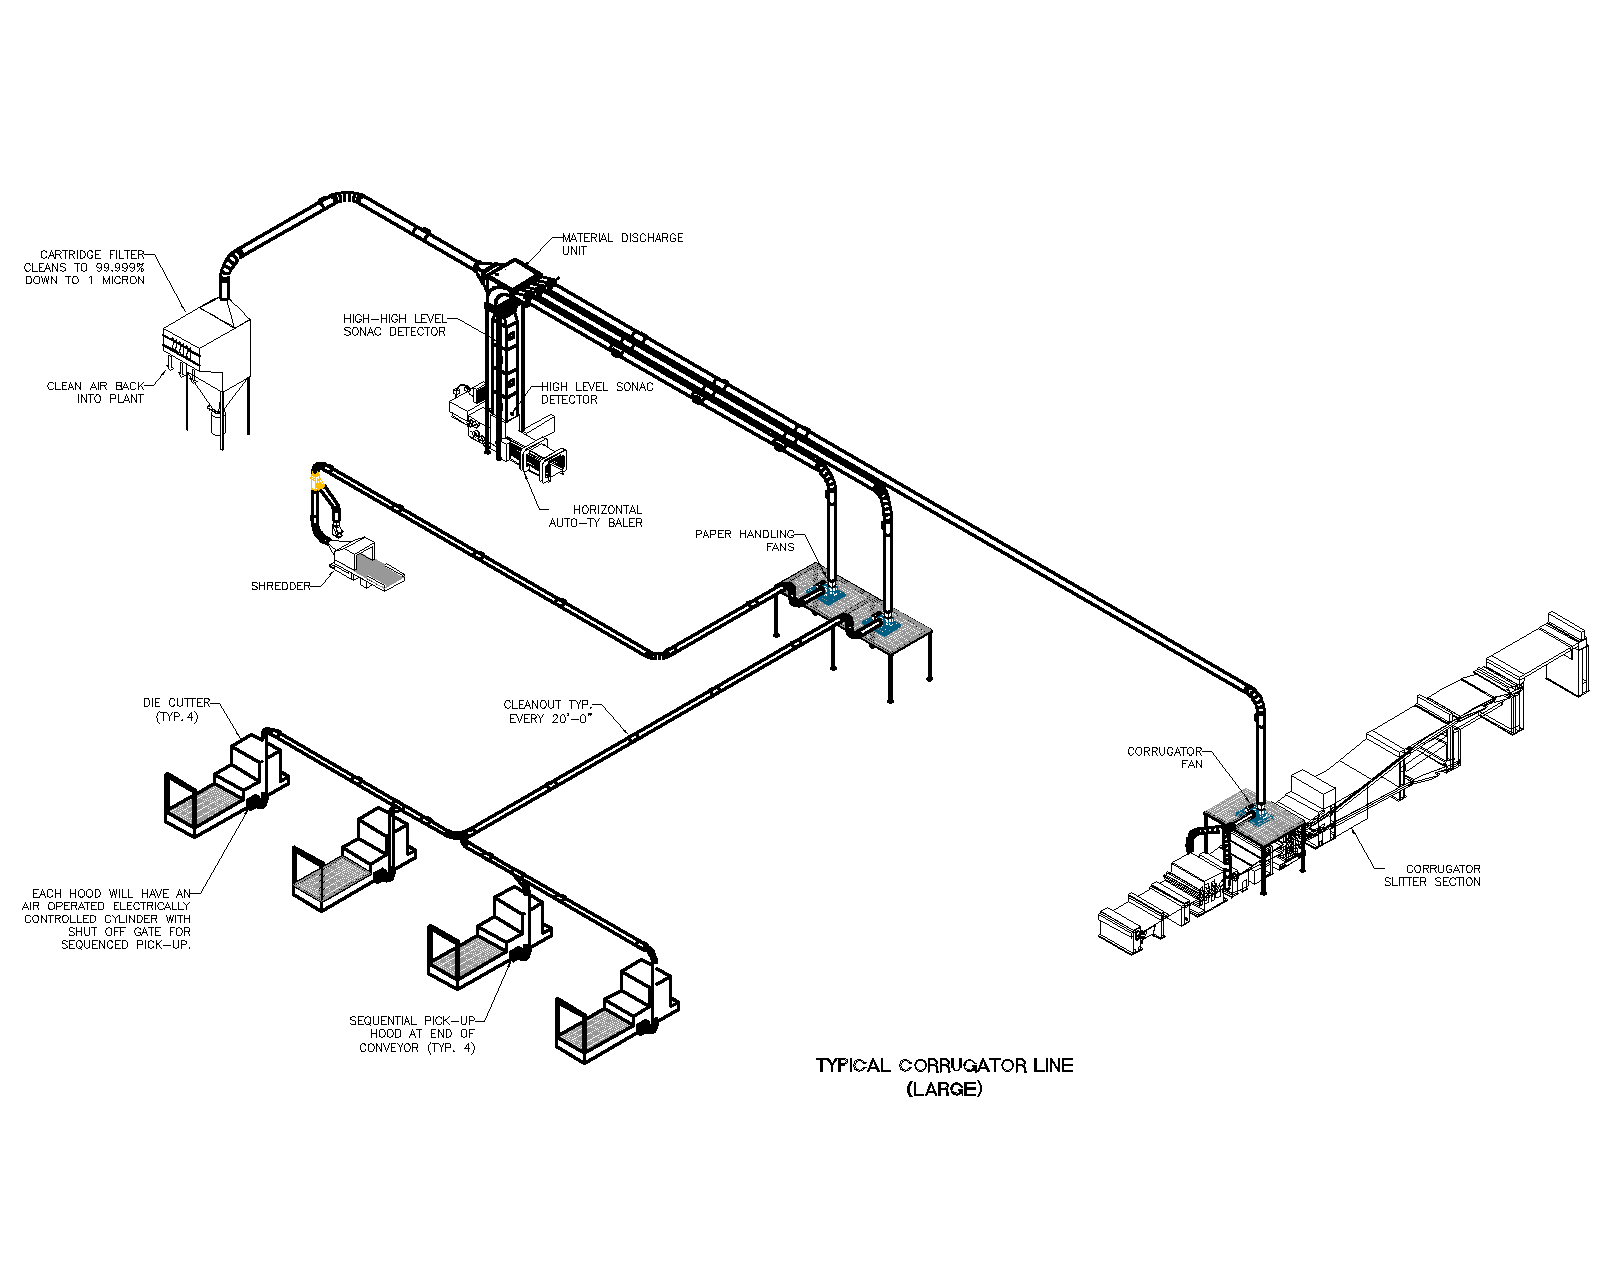 Corrugator System Illustration by Air Systems Design for the most efficient pneumatic conveying systems.